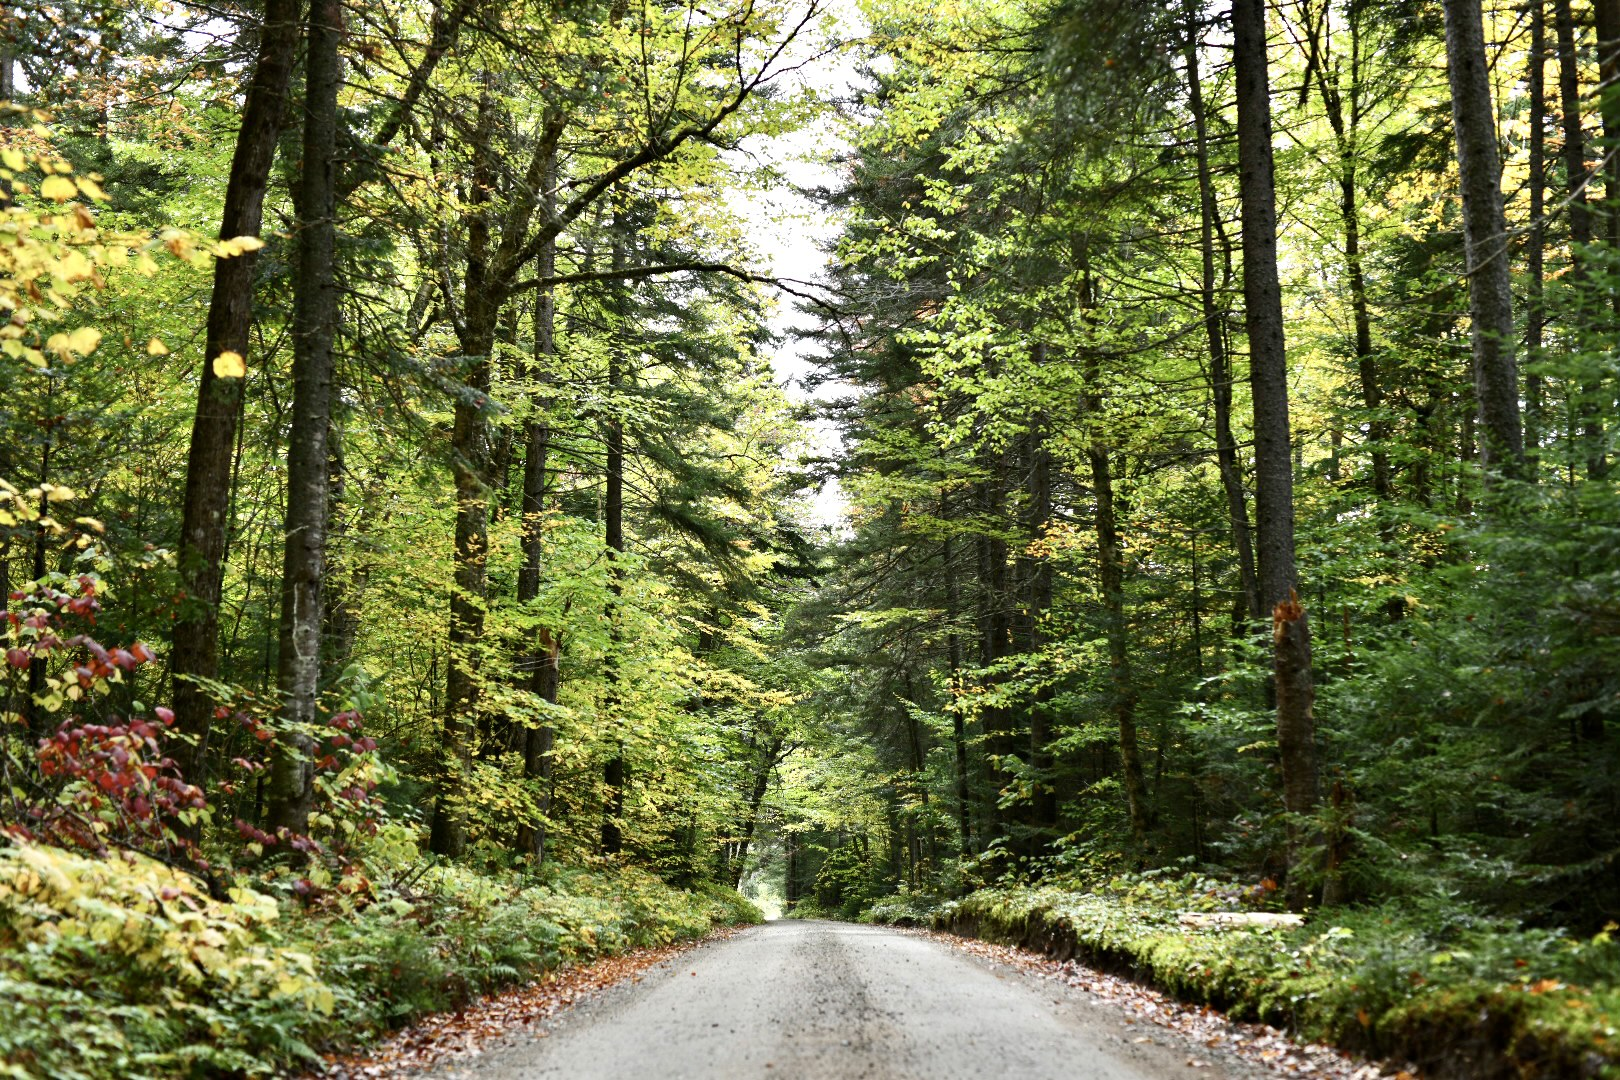 Center of image is a dirt road going through a deciduous forest, some leaves are just beginning to turn color. 2021. Taryn Okesson. Digital Photography. White Mountain National Forest, New Hampshire.